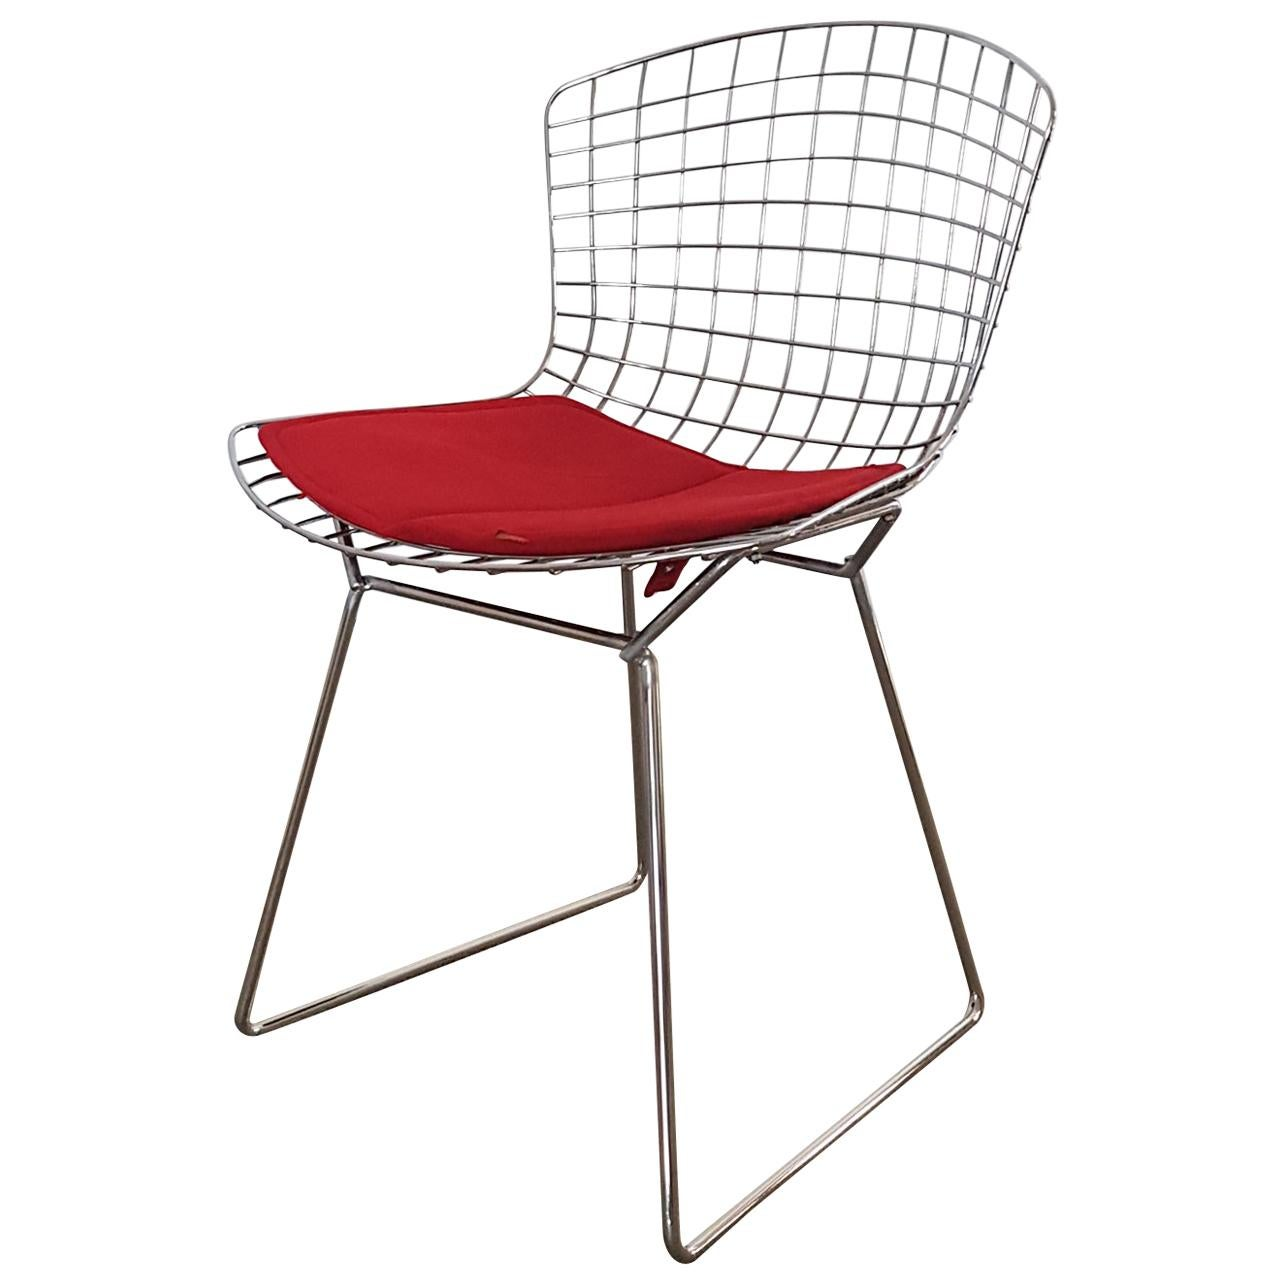 original bertoia side chairs revisited by cl ment brazille for sale  original bertoia side chairs revisited by cl ment brazille for sale at 1stdibs